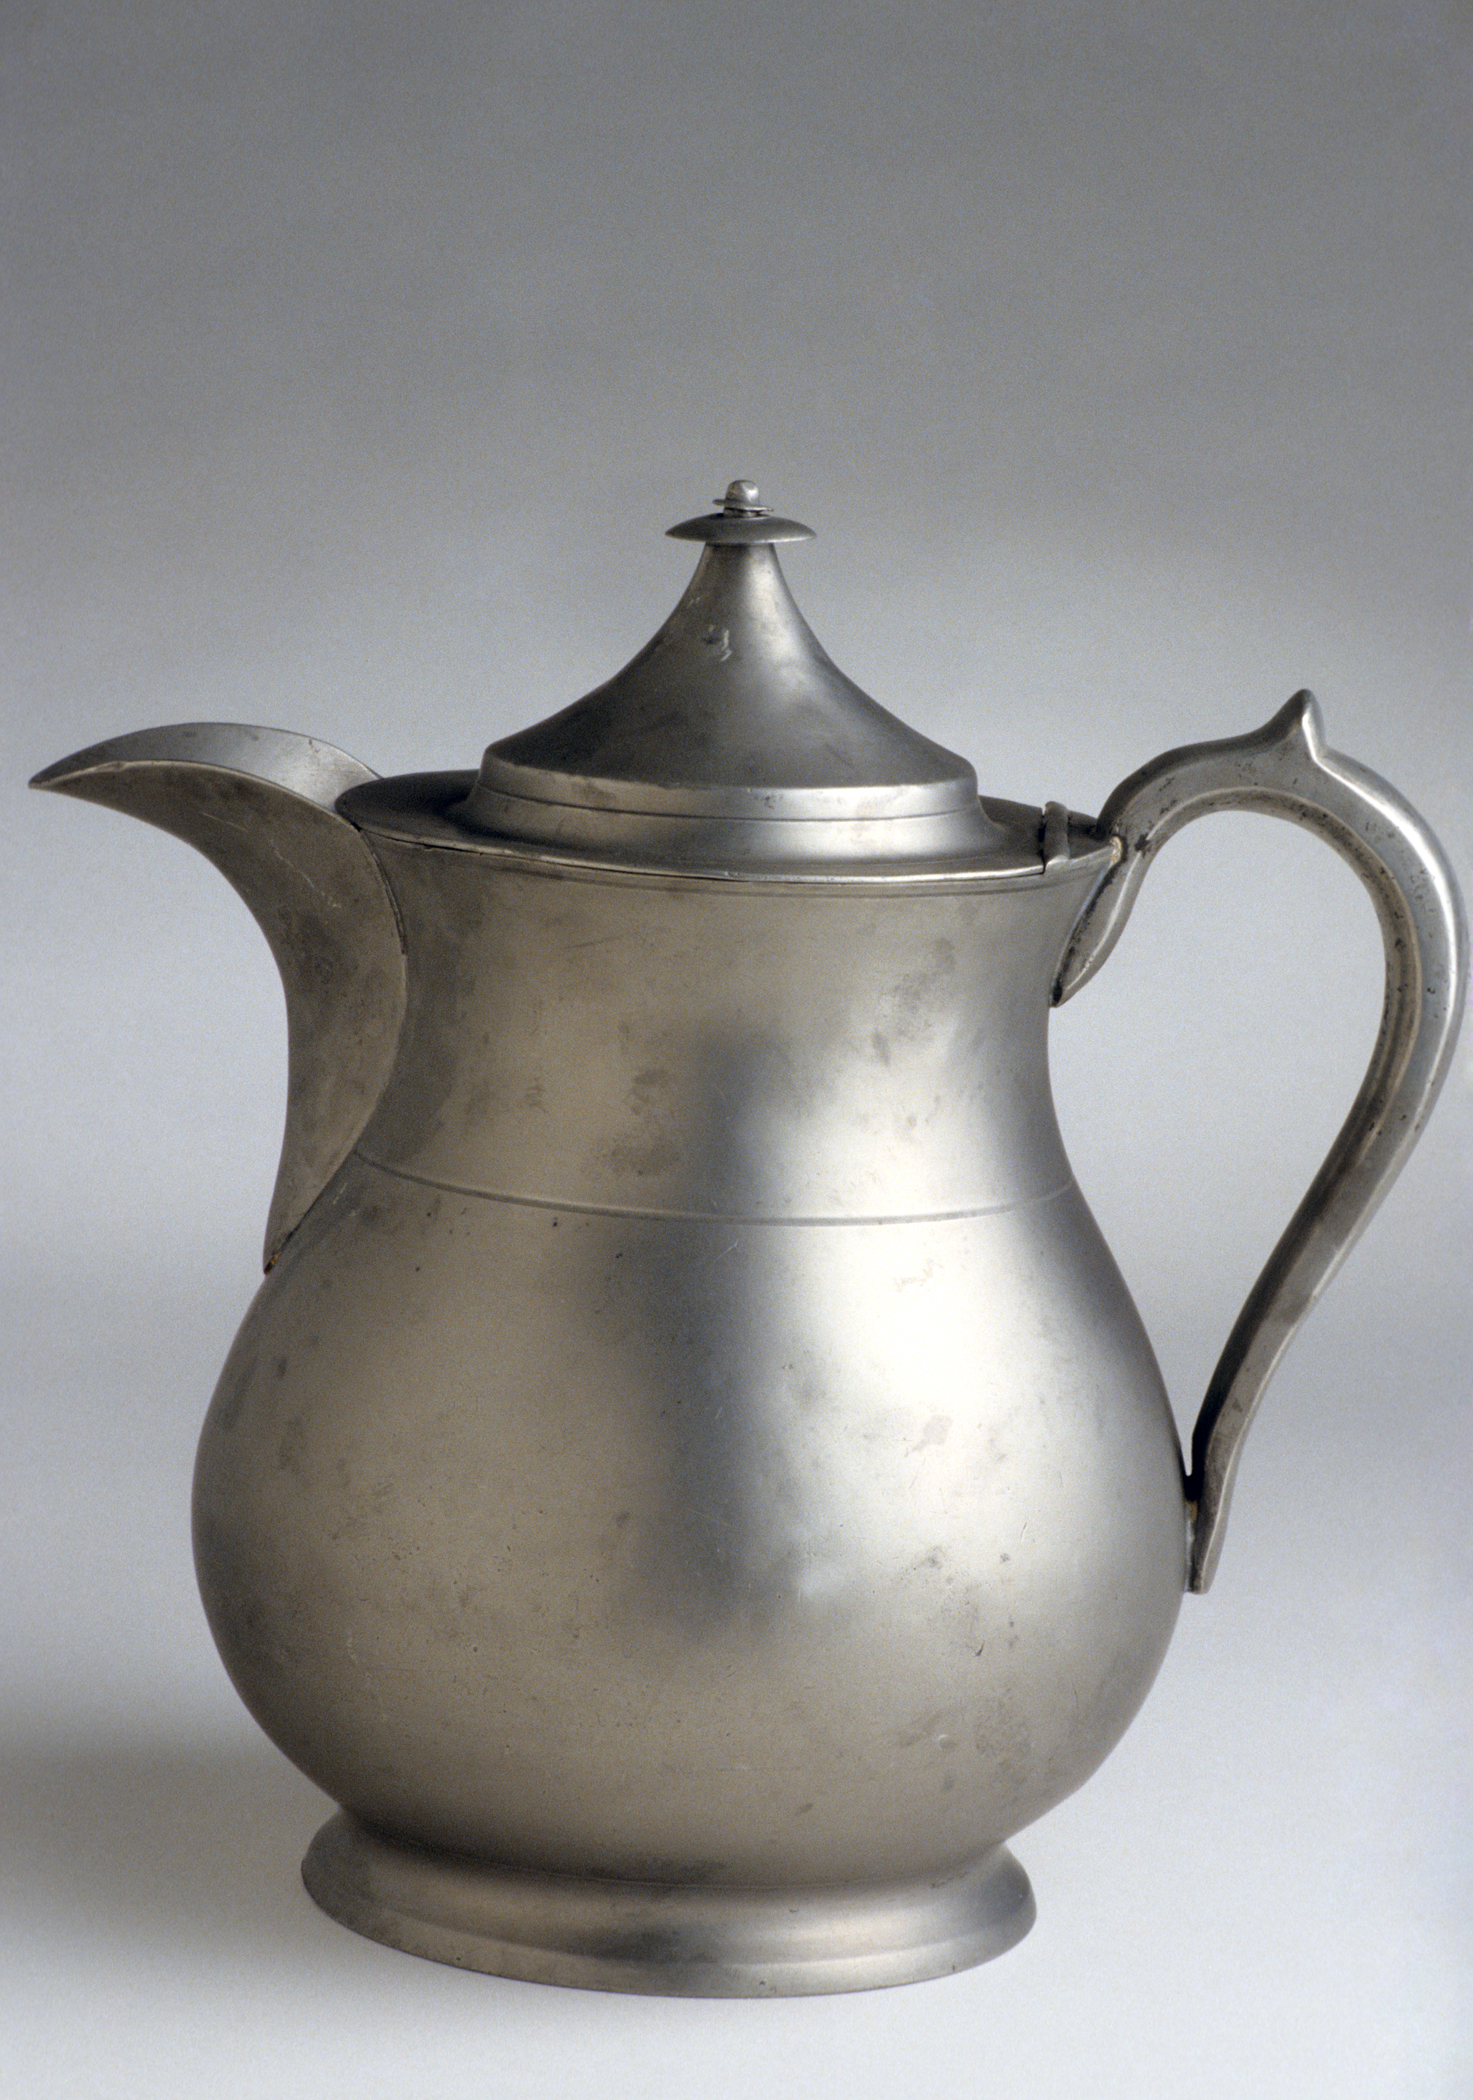 1956.0046.009 Pewter pitcher